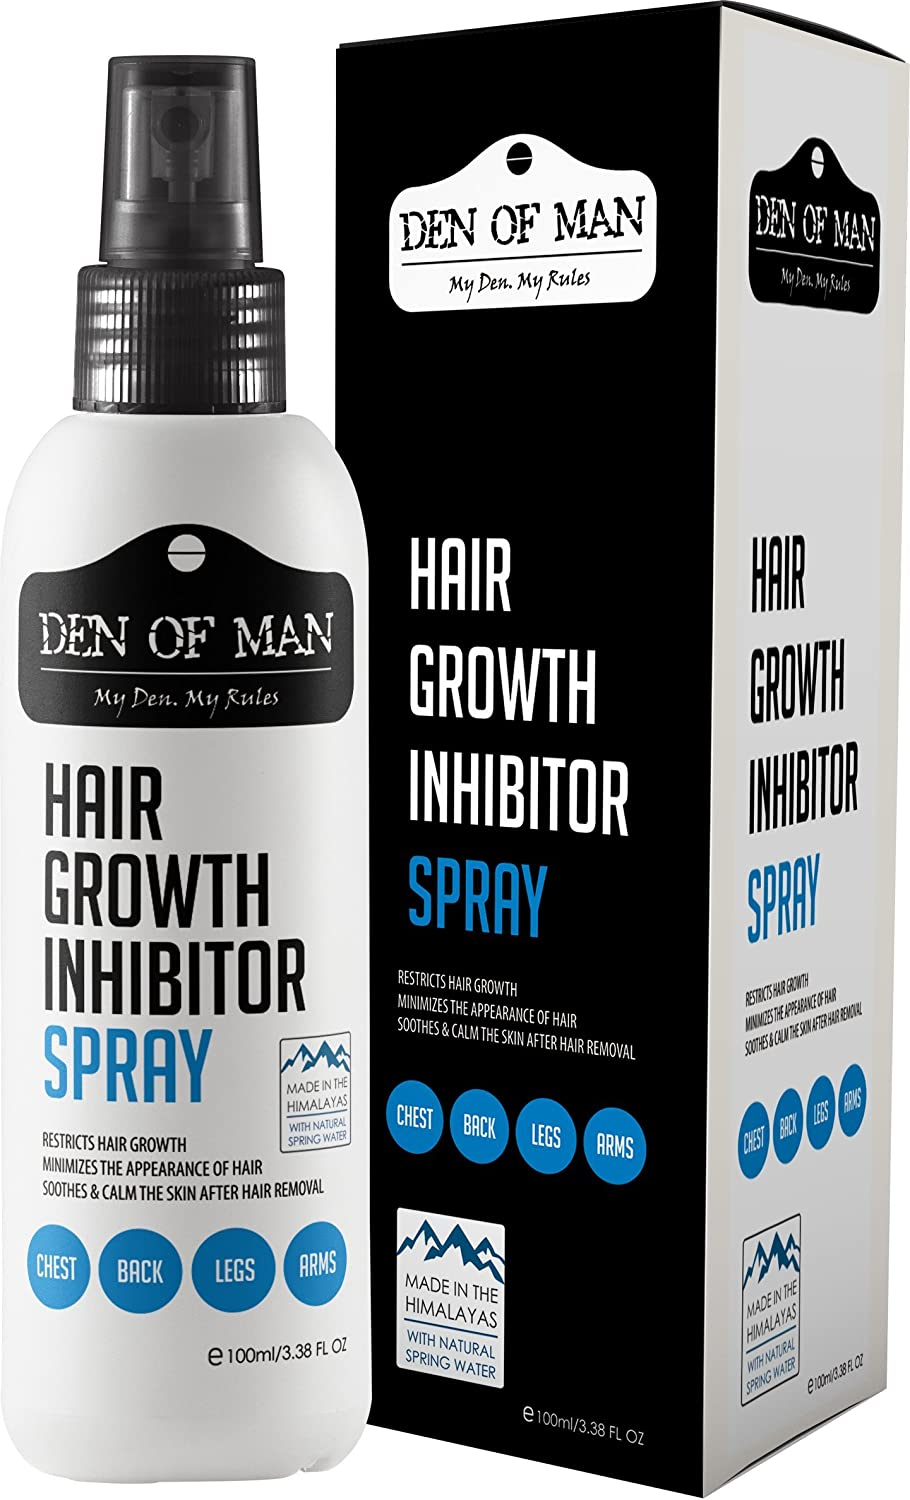 Den of Man™ 100% Natural Hair Growth Inhibitor Spray | For Use After Hair Removal From Body & Face | Permanently Minimizes Regrowth | Safe For Men & Women Harmony